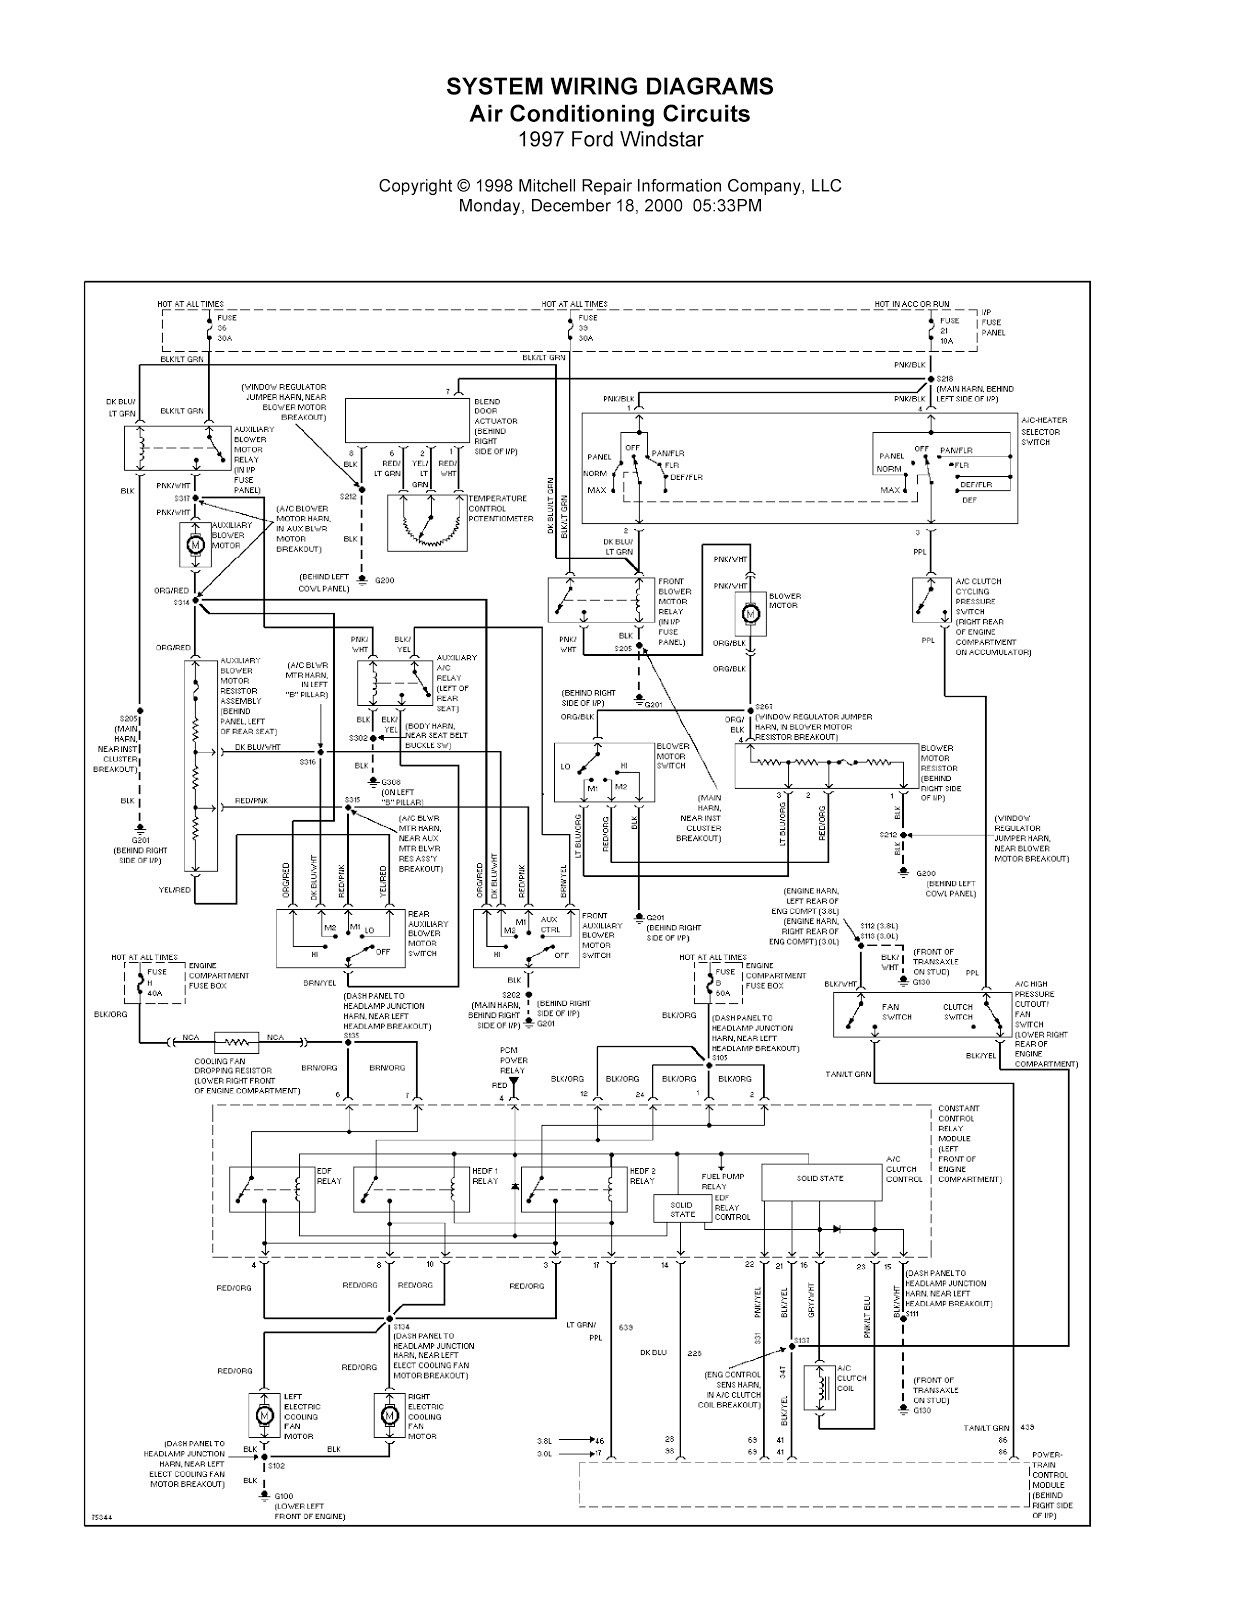 2001 ford Explorer Engine Diagram Fuse Box Diagram Also Free Image About  Wiring Diagram and Schematic